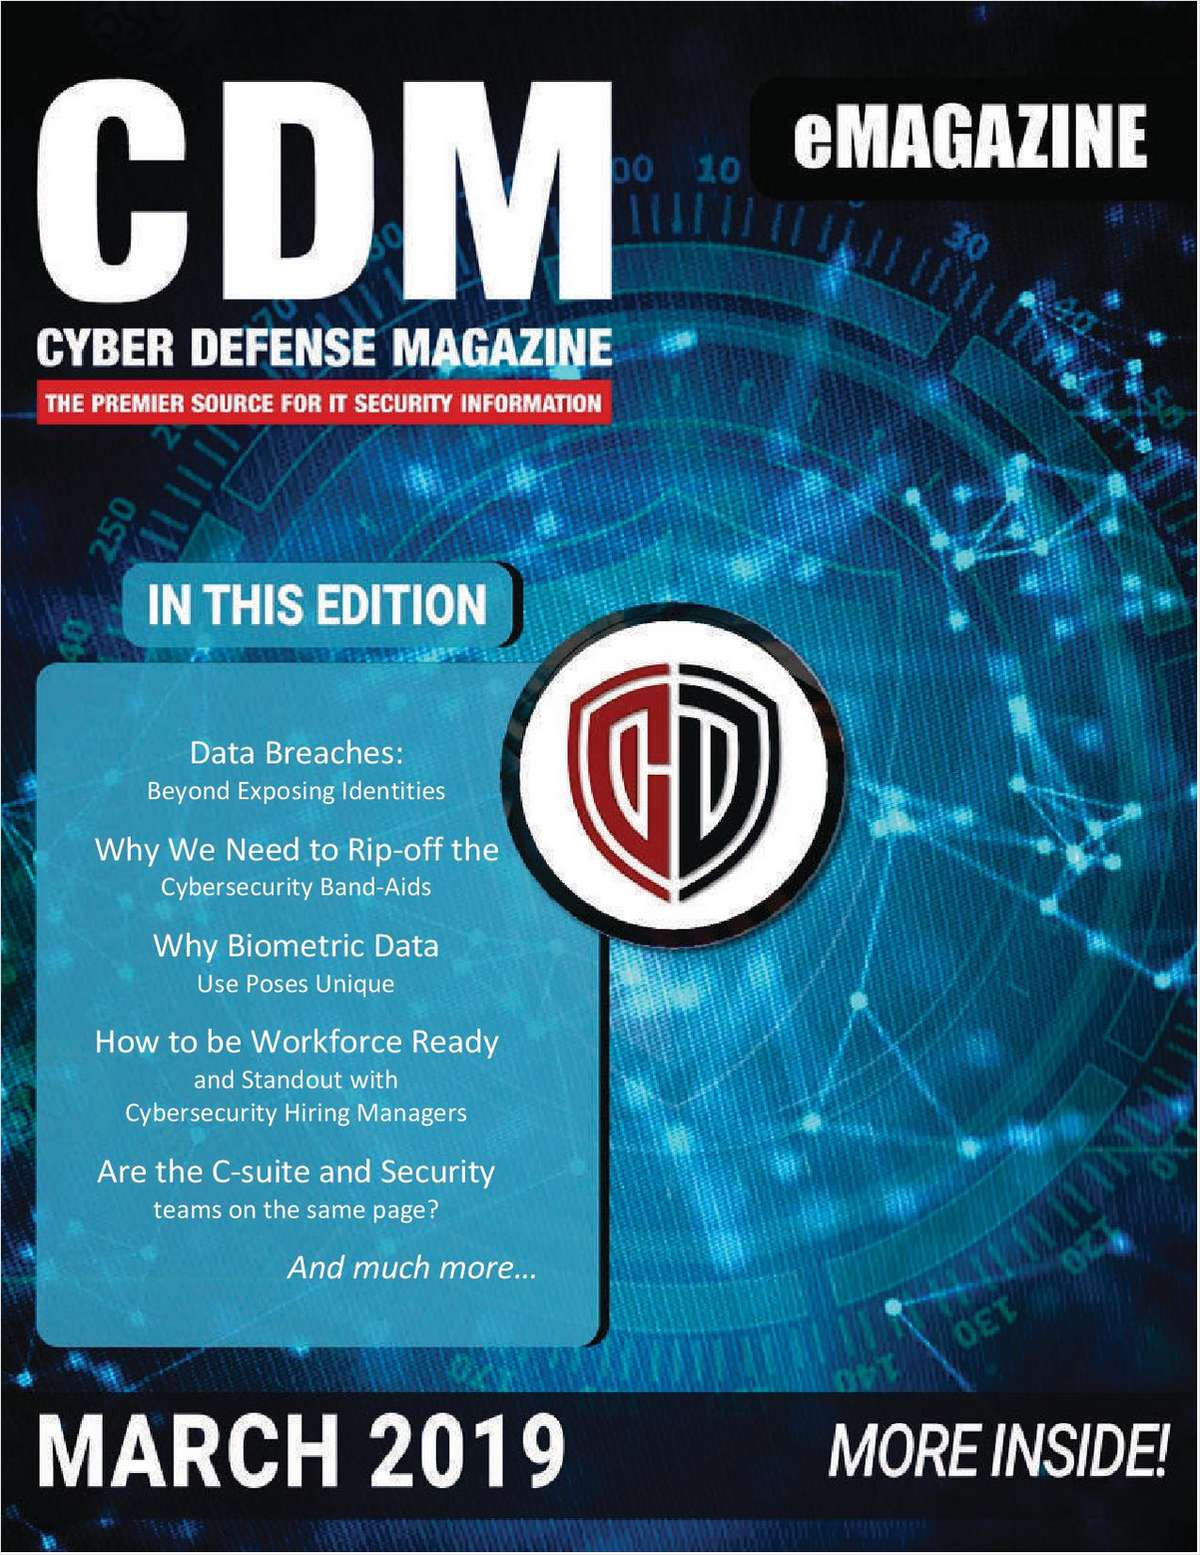 Cyber Defense eMagazine - Data Breaches Beyond Exposing Identities - March 2019 Edition Screenshot